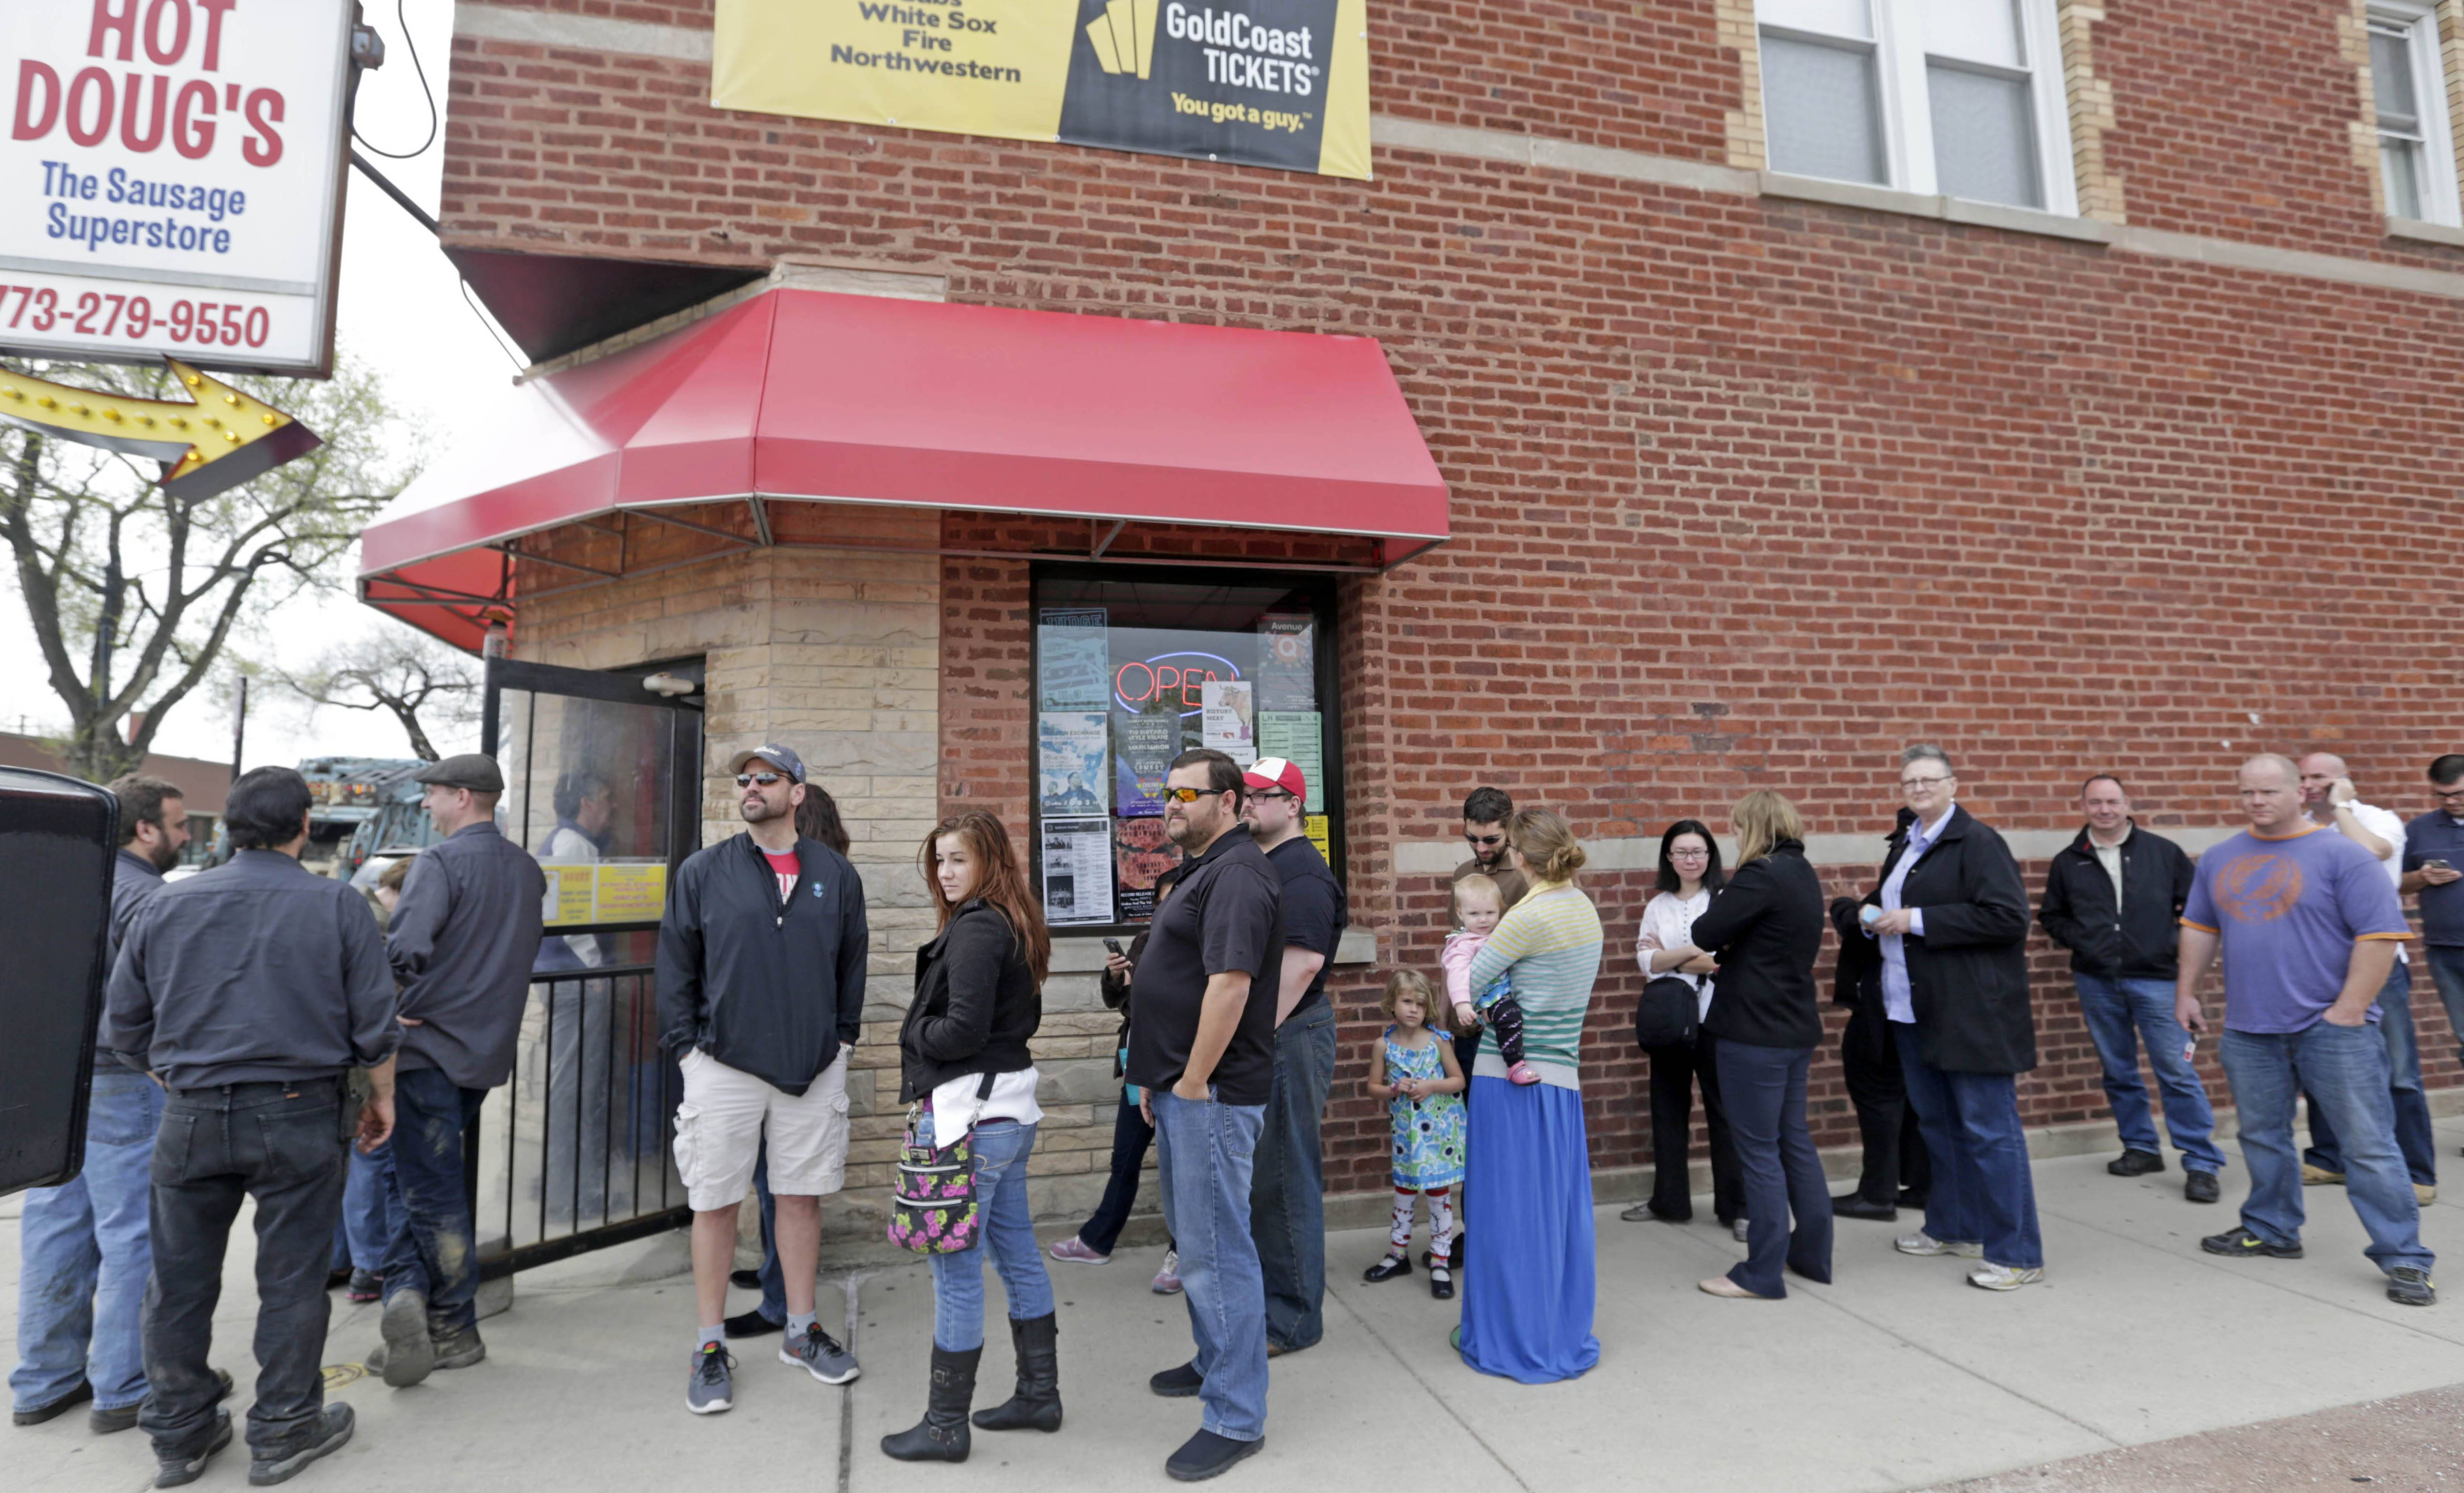 Customers line up Wednesday outside Hot Doug's in Chicago. The establishment has become a must-stop destination for both locals and wiener fans from around the country.